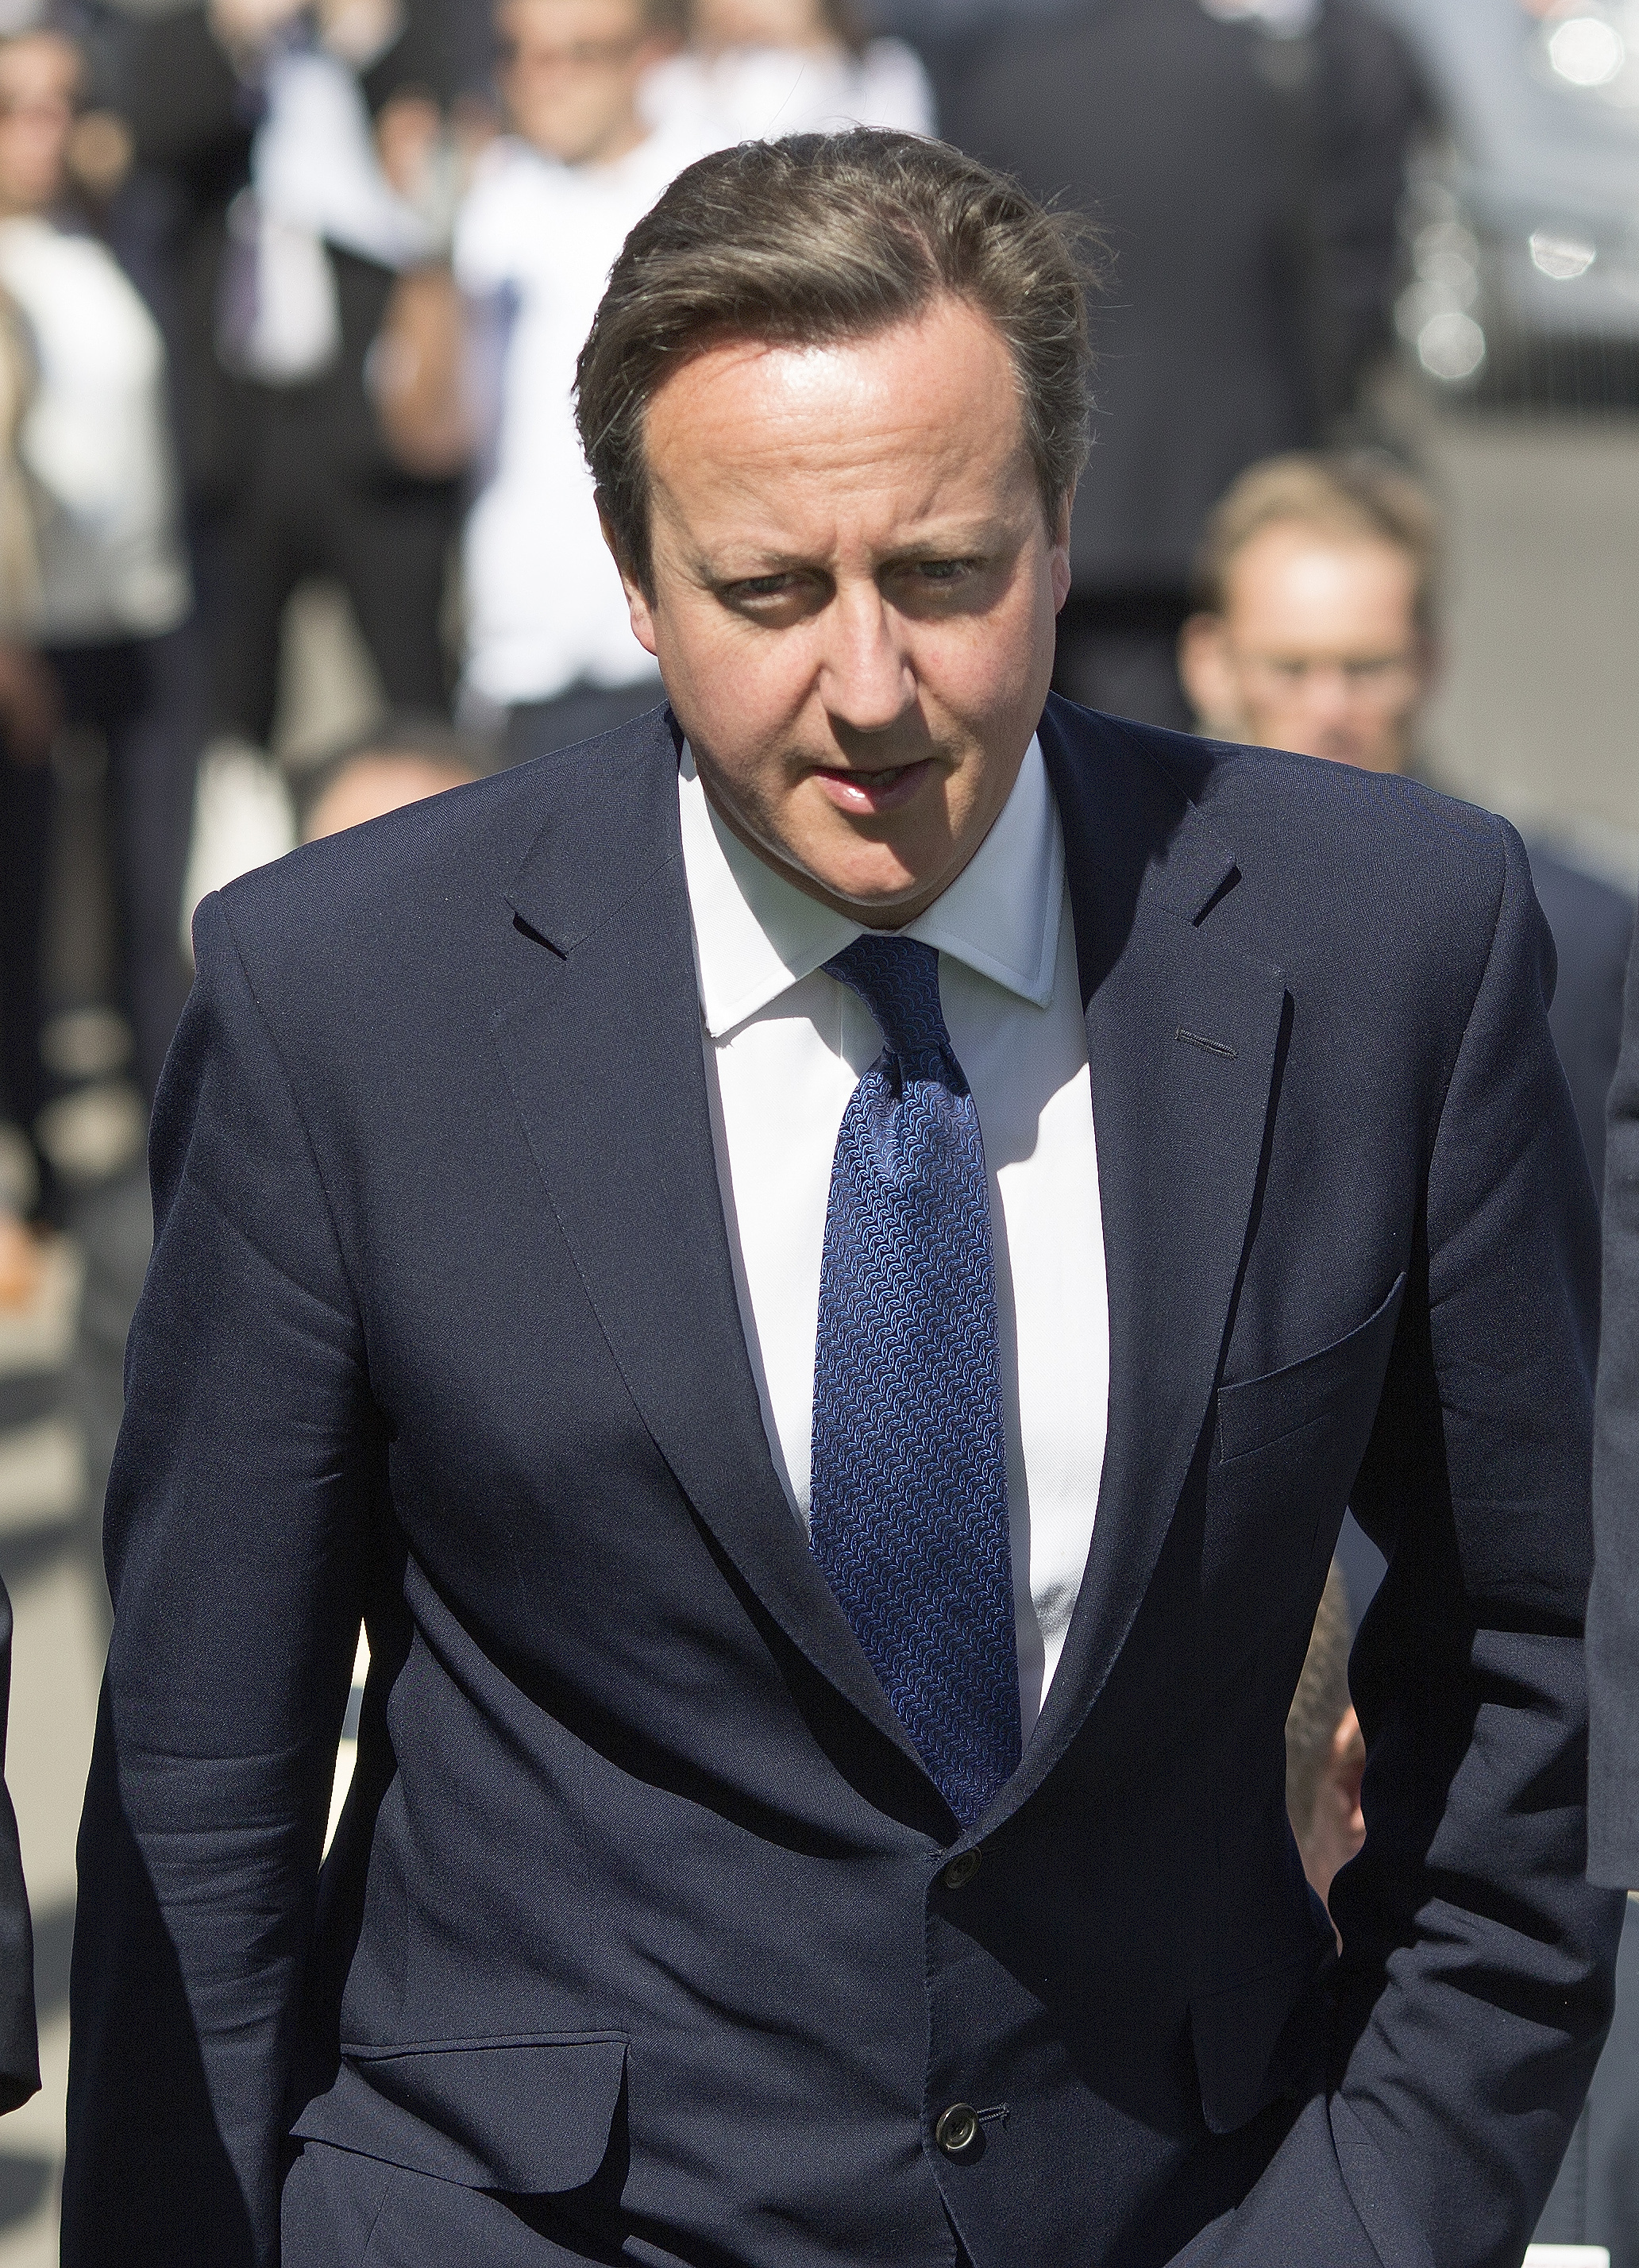 Britain's Prime Minister David Cameron arrives to officially open the 2014 Farnborough International Airshow, in southern England, on July 14, 2014